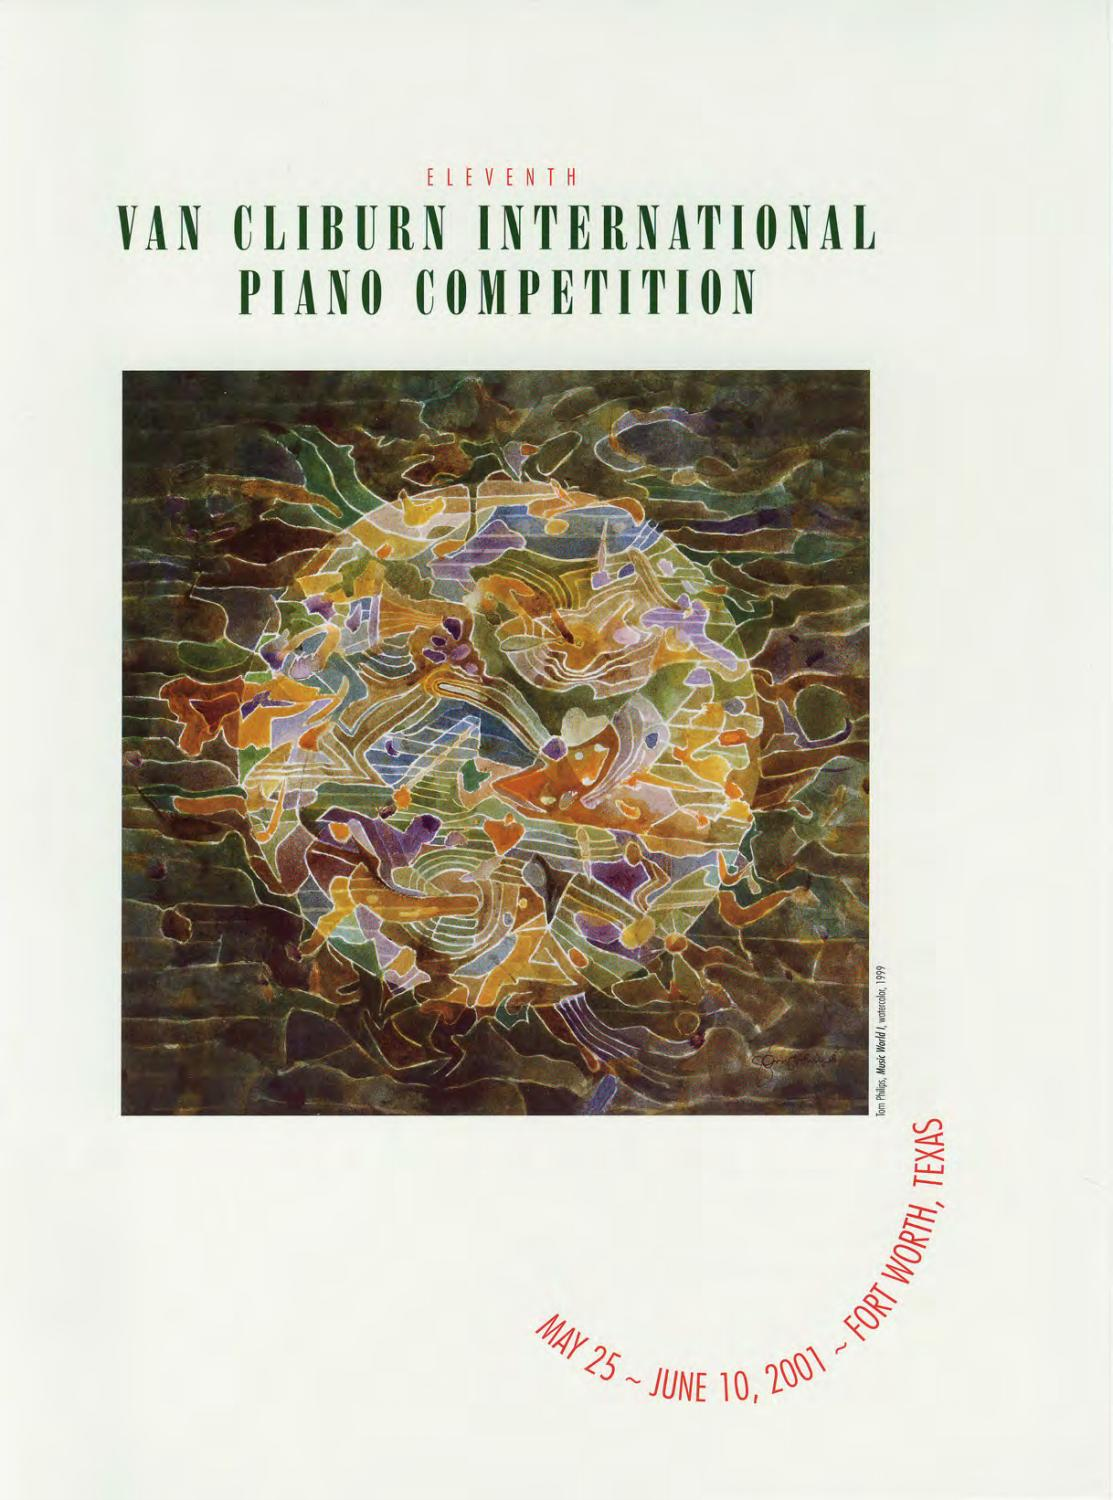 hight resolution of eleventh van cliburn international piano competition program book 2001 by the cliburn issuu